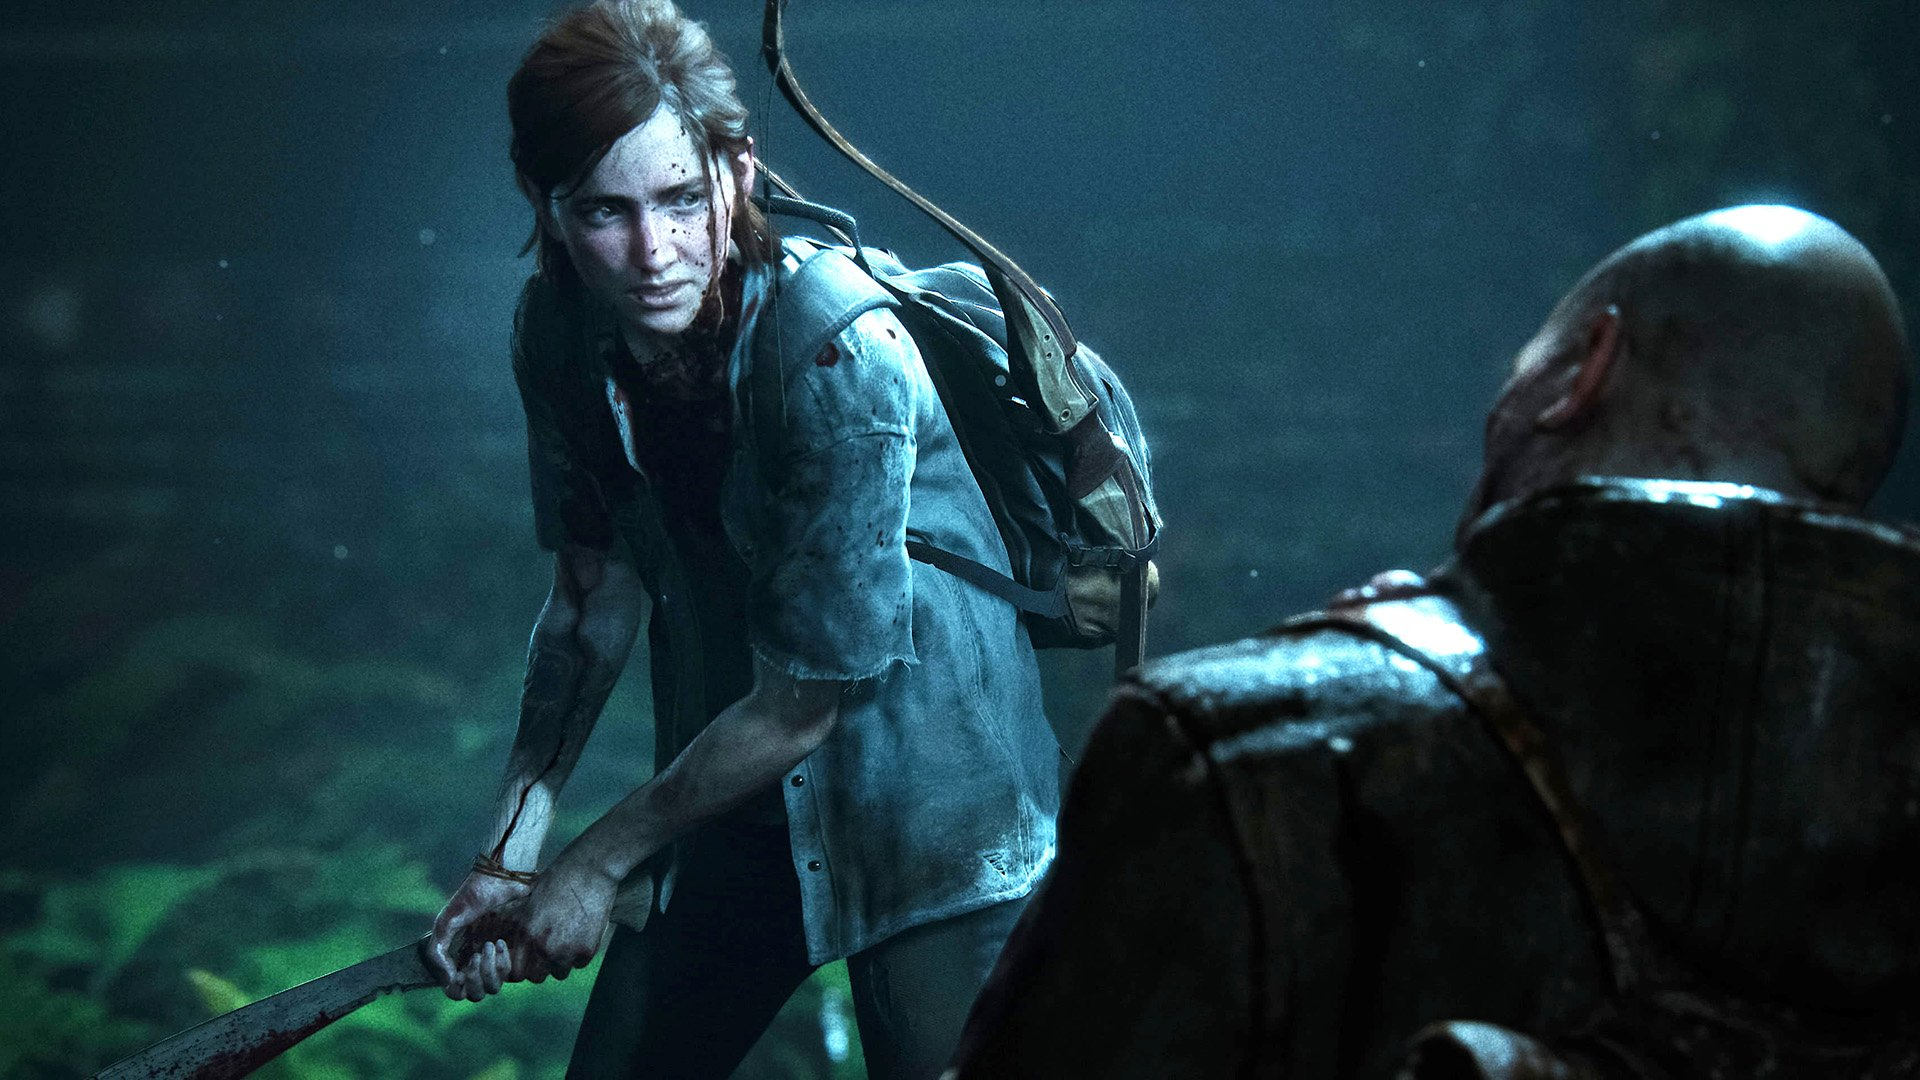 Last Of Us 2 Release Date Possibly Hinted At By Ashley